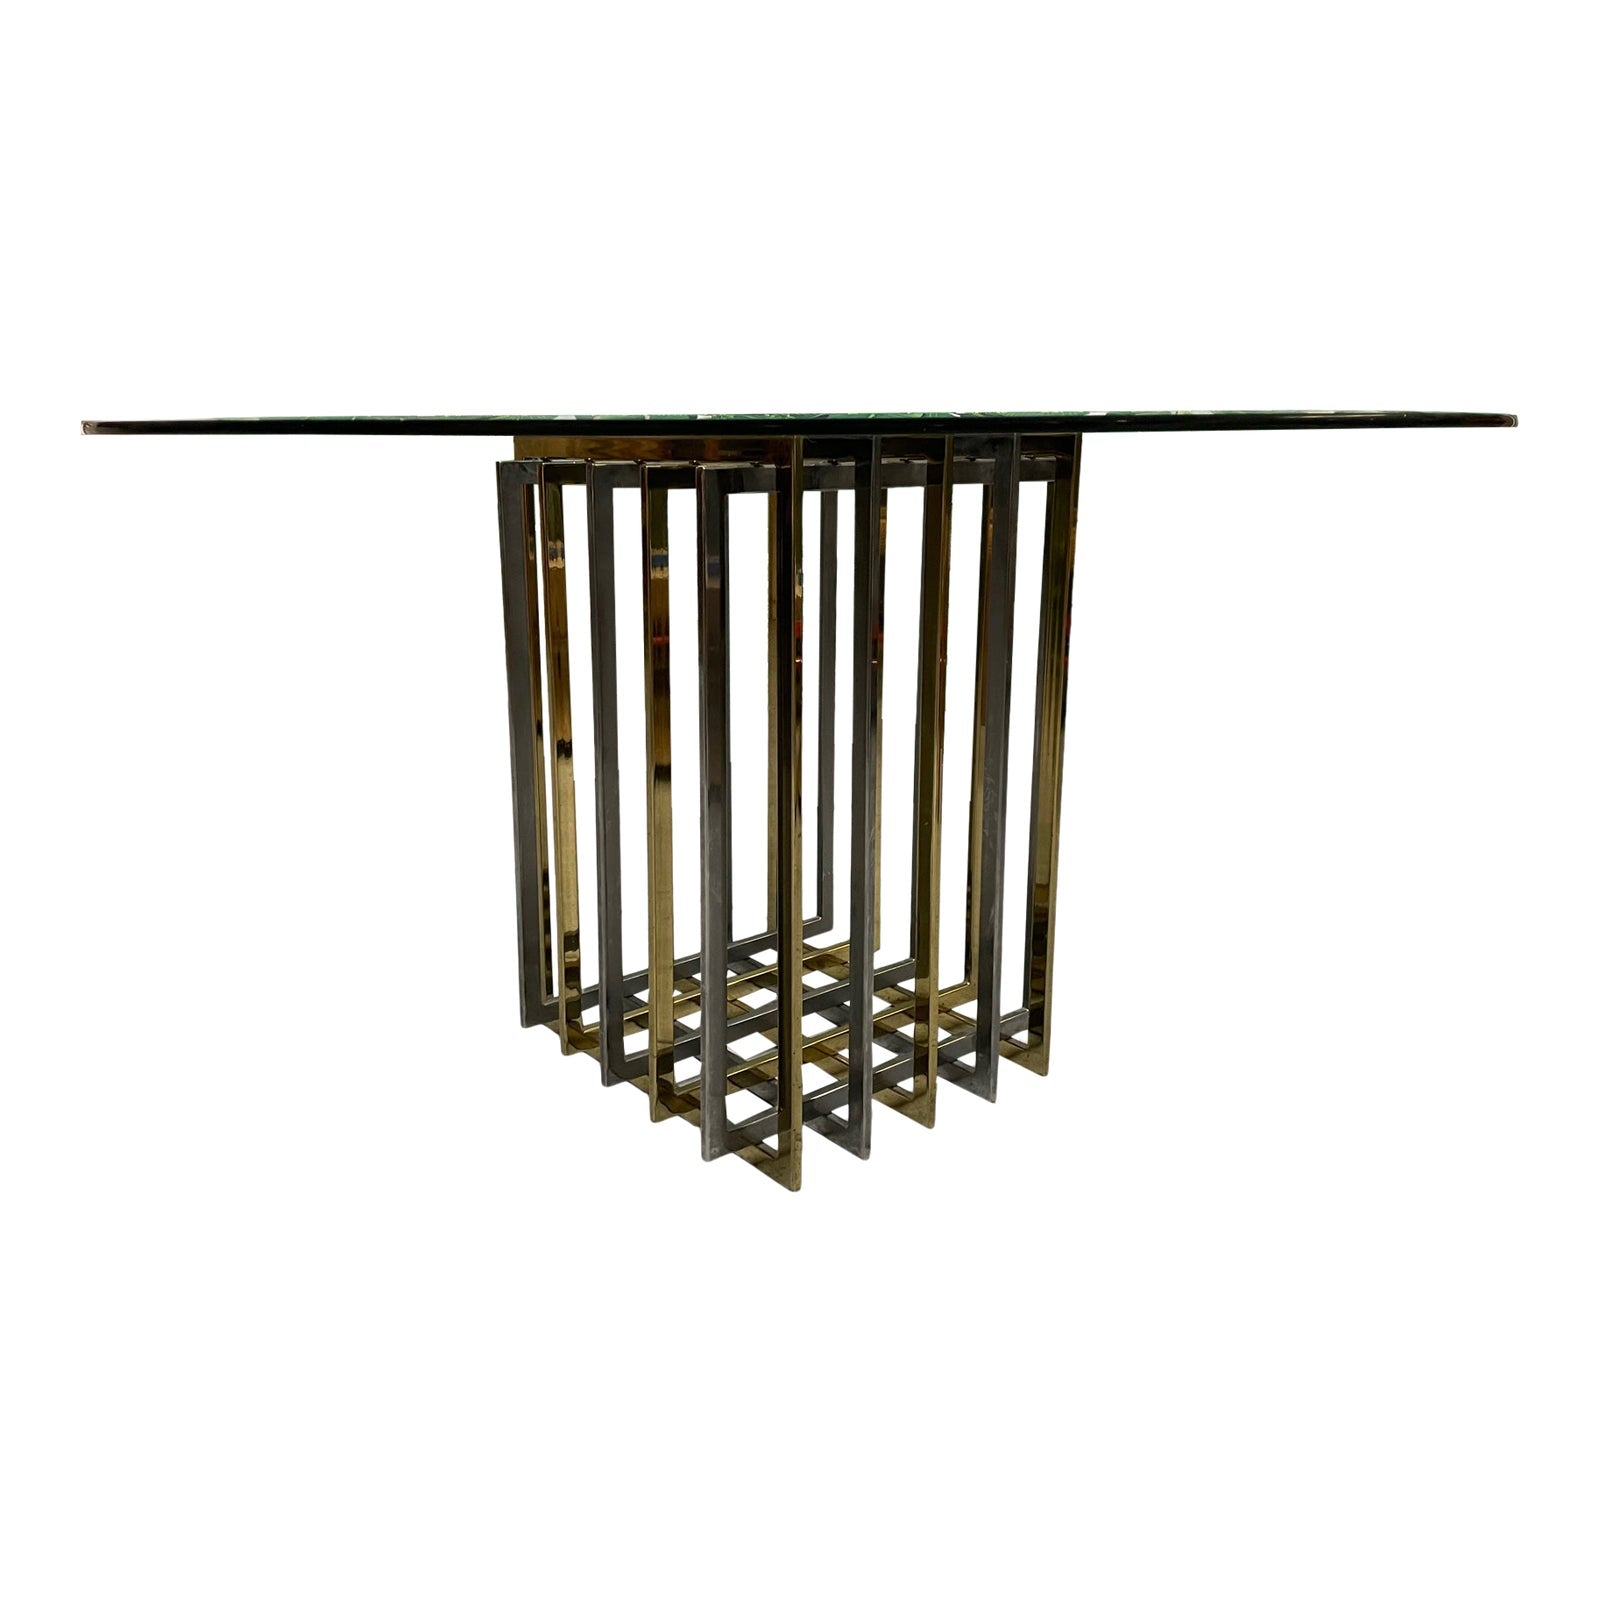 Pierre Cardin Chrome and Brass Brutalist Cube Dining Table